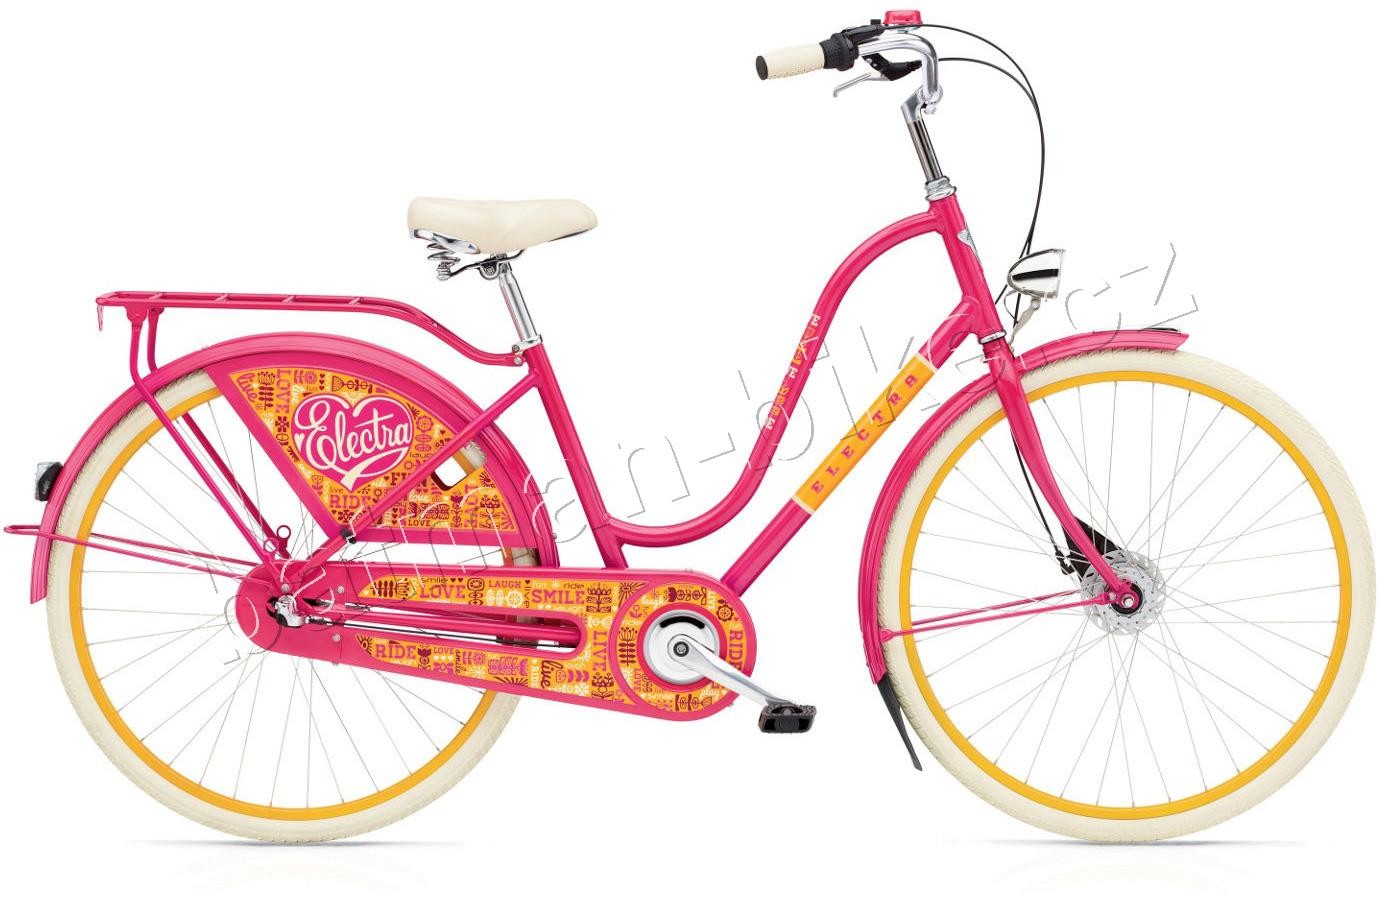 Electra Amsterdam Fashion 7i Joyride bright pink ladies'